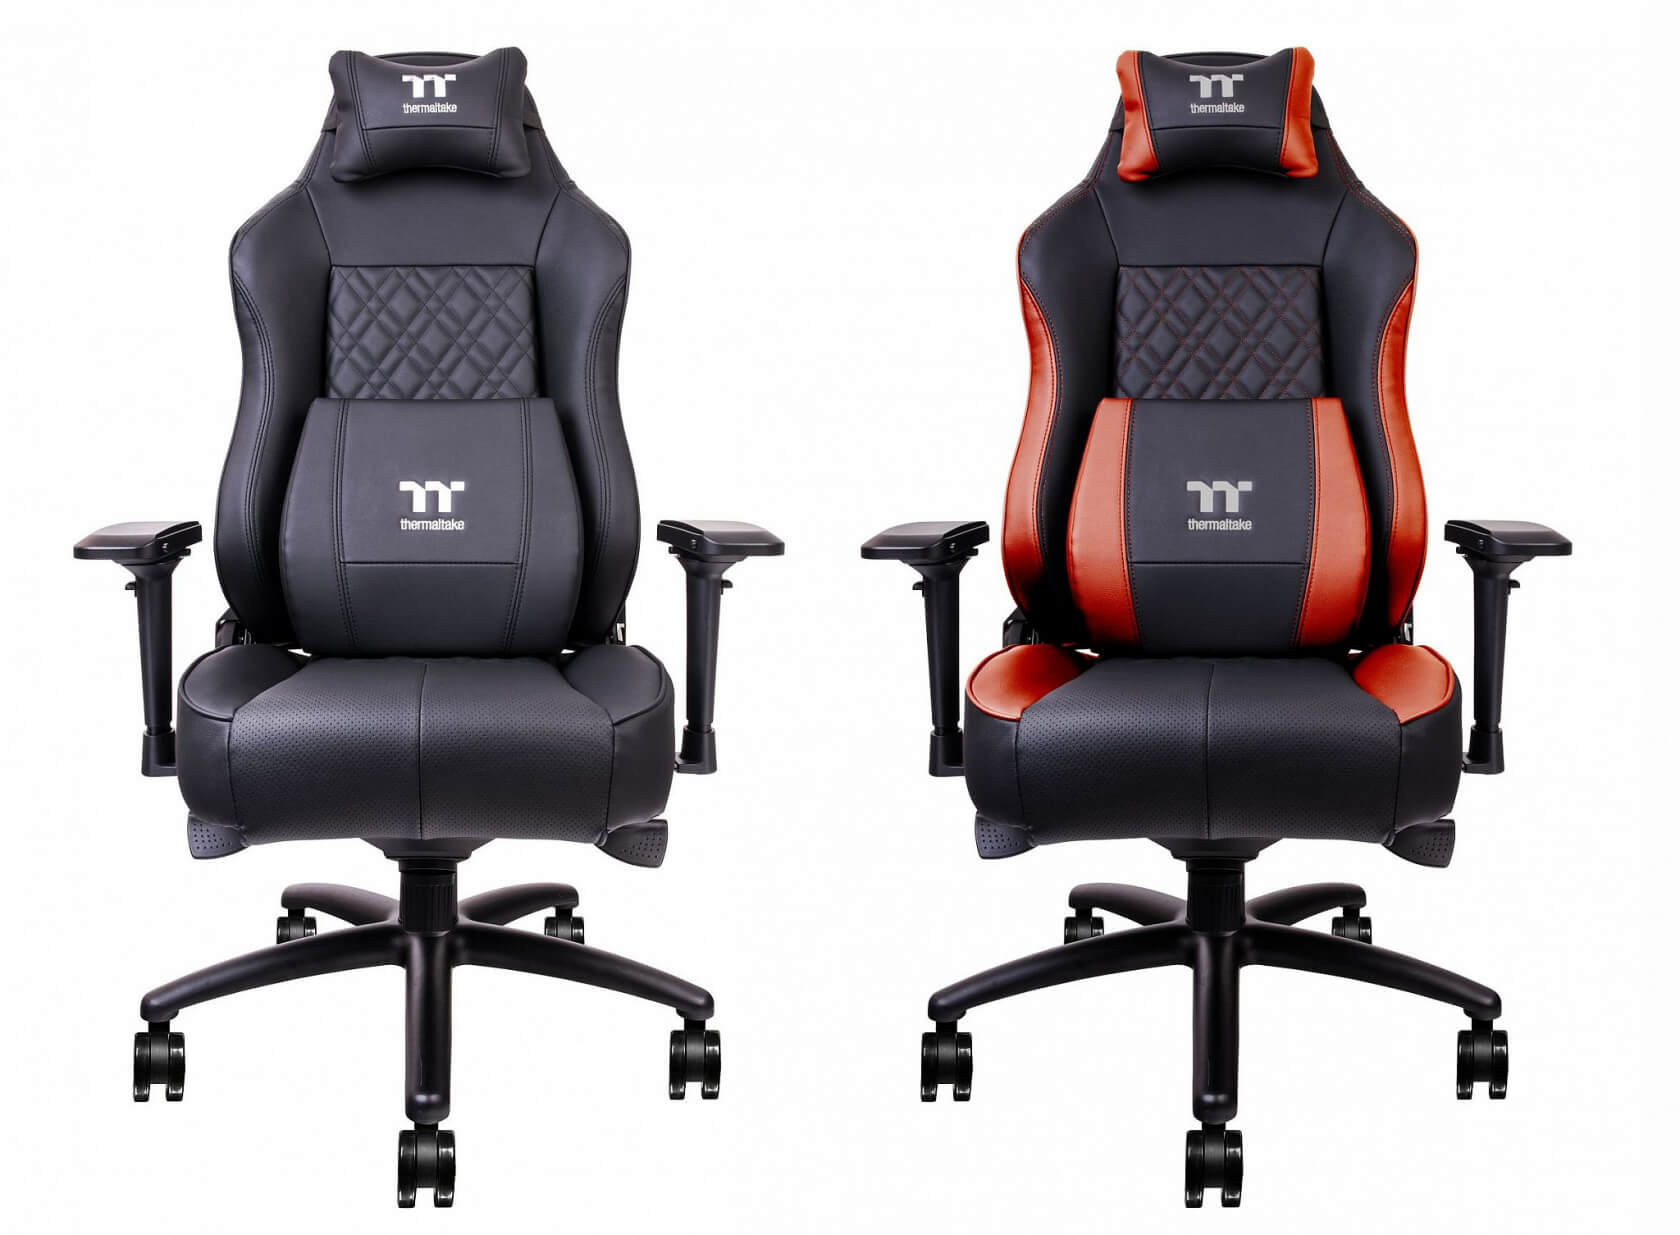 Thermaltake s new gaming chair cools your butt with four built in